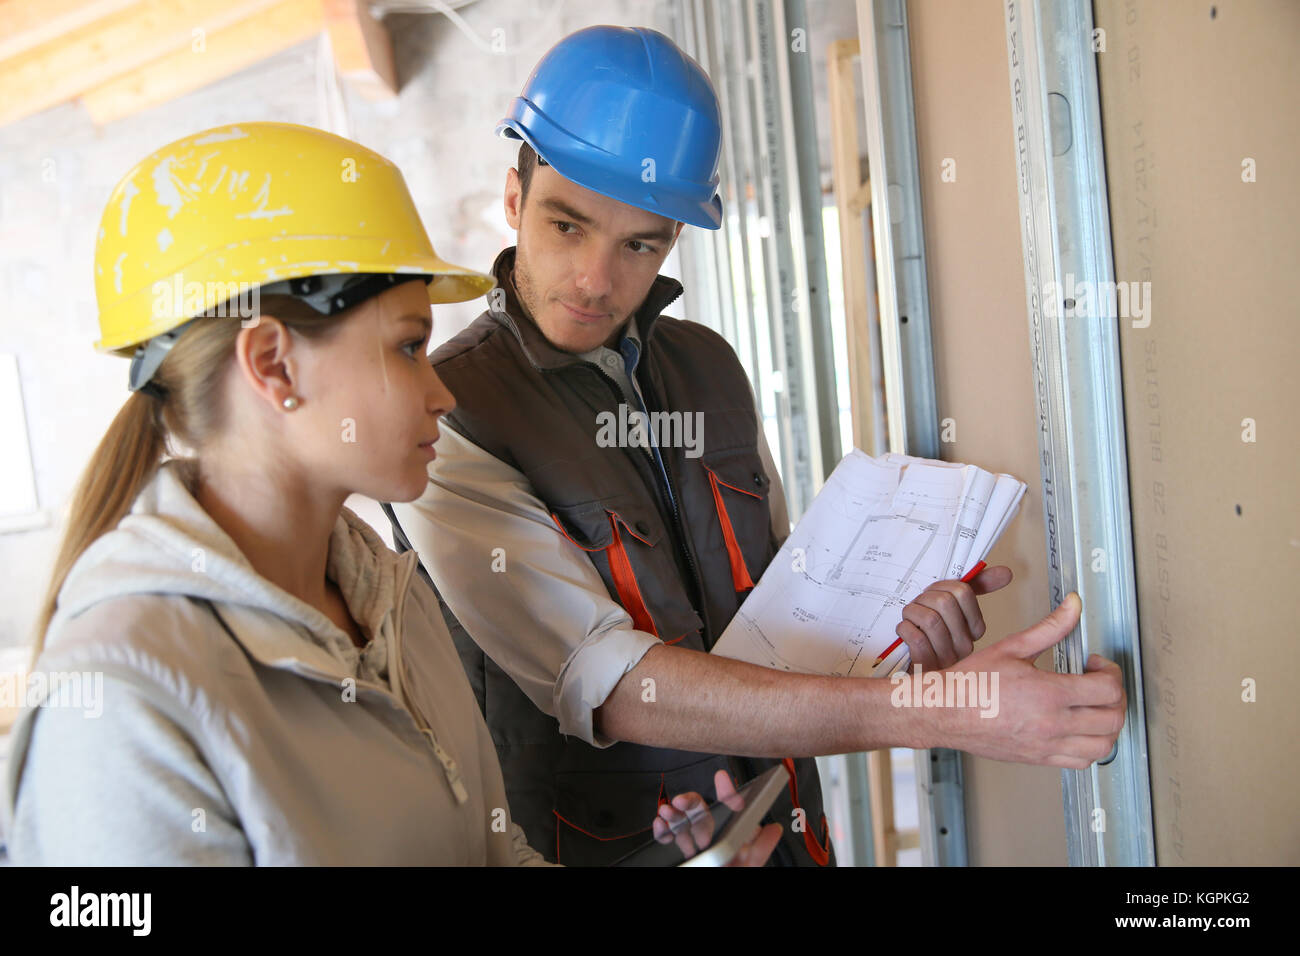 Young woman in professional training on building site - Stock Image